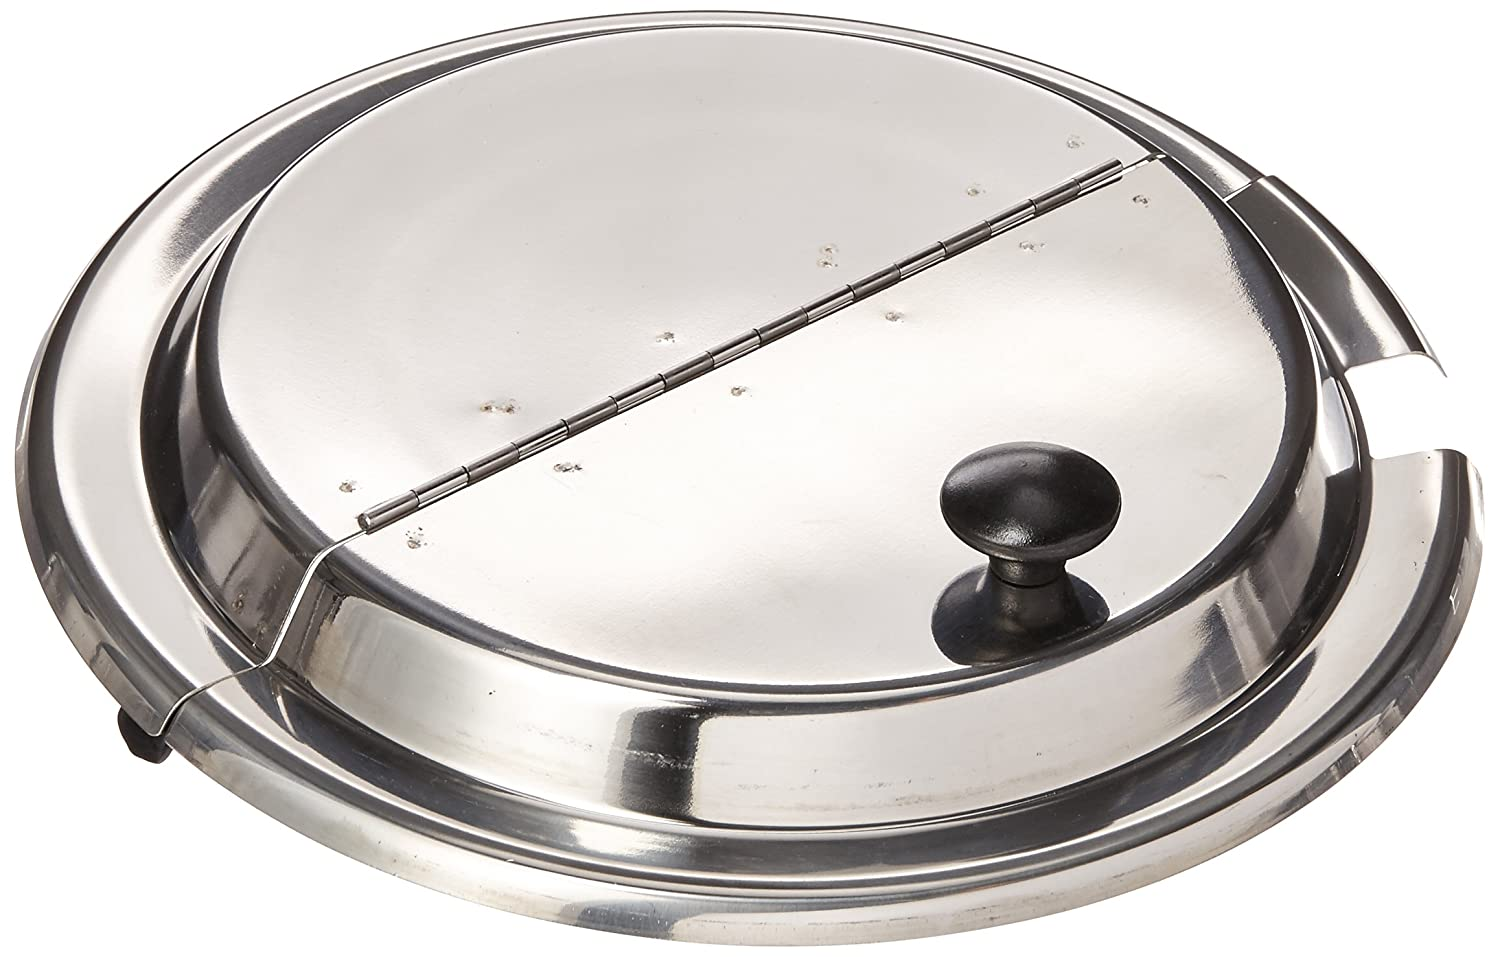 Winco INSH-11 Hinged Cover, 11-Quart, Stainless Steel Winco USA 14556-14189